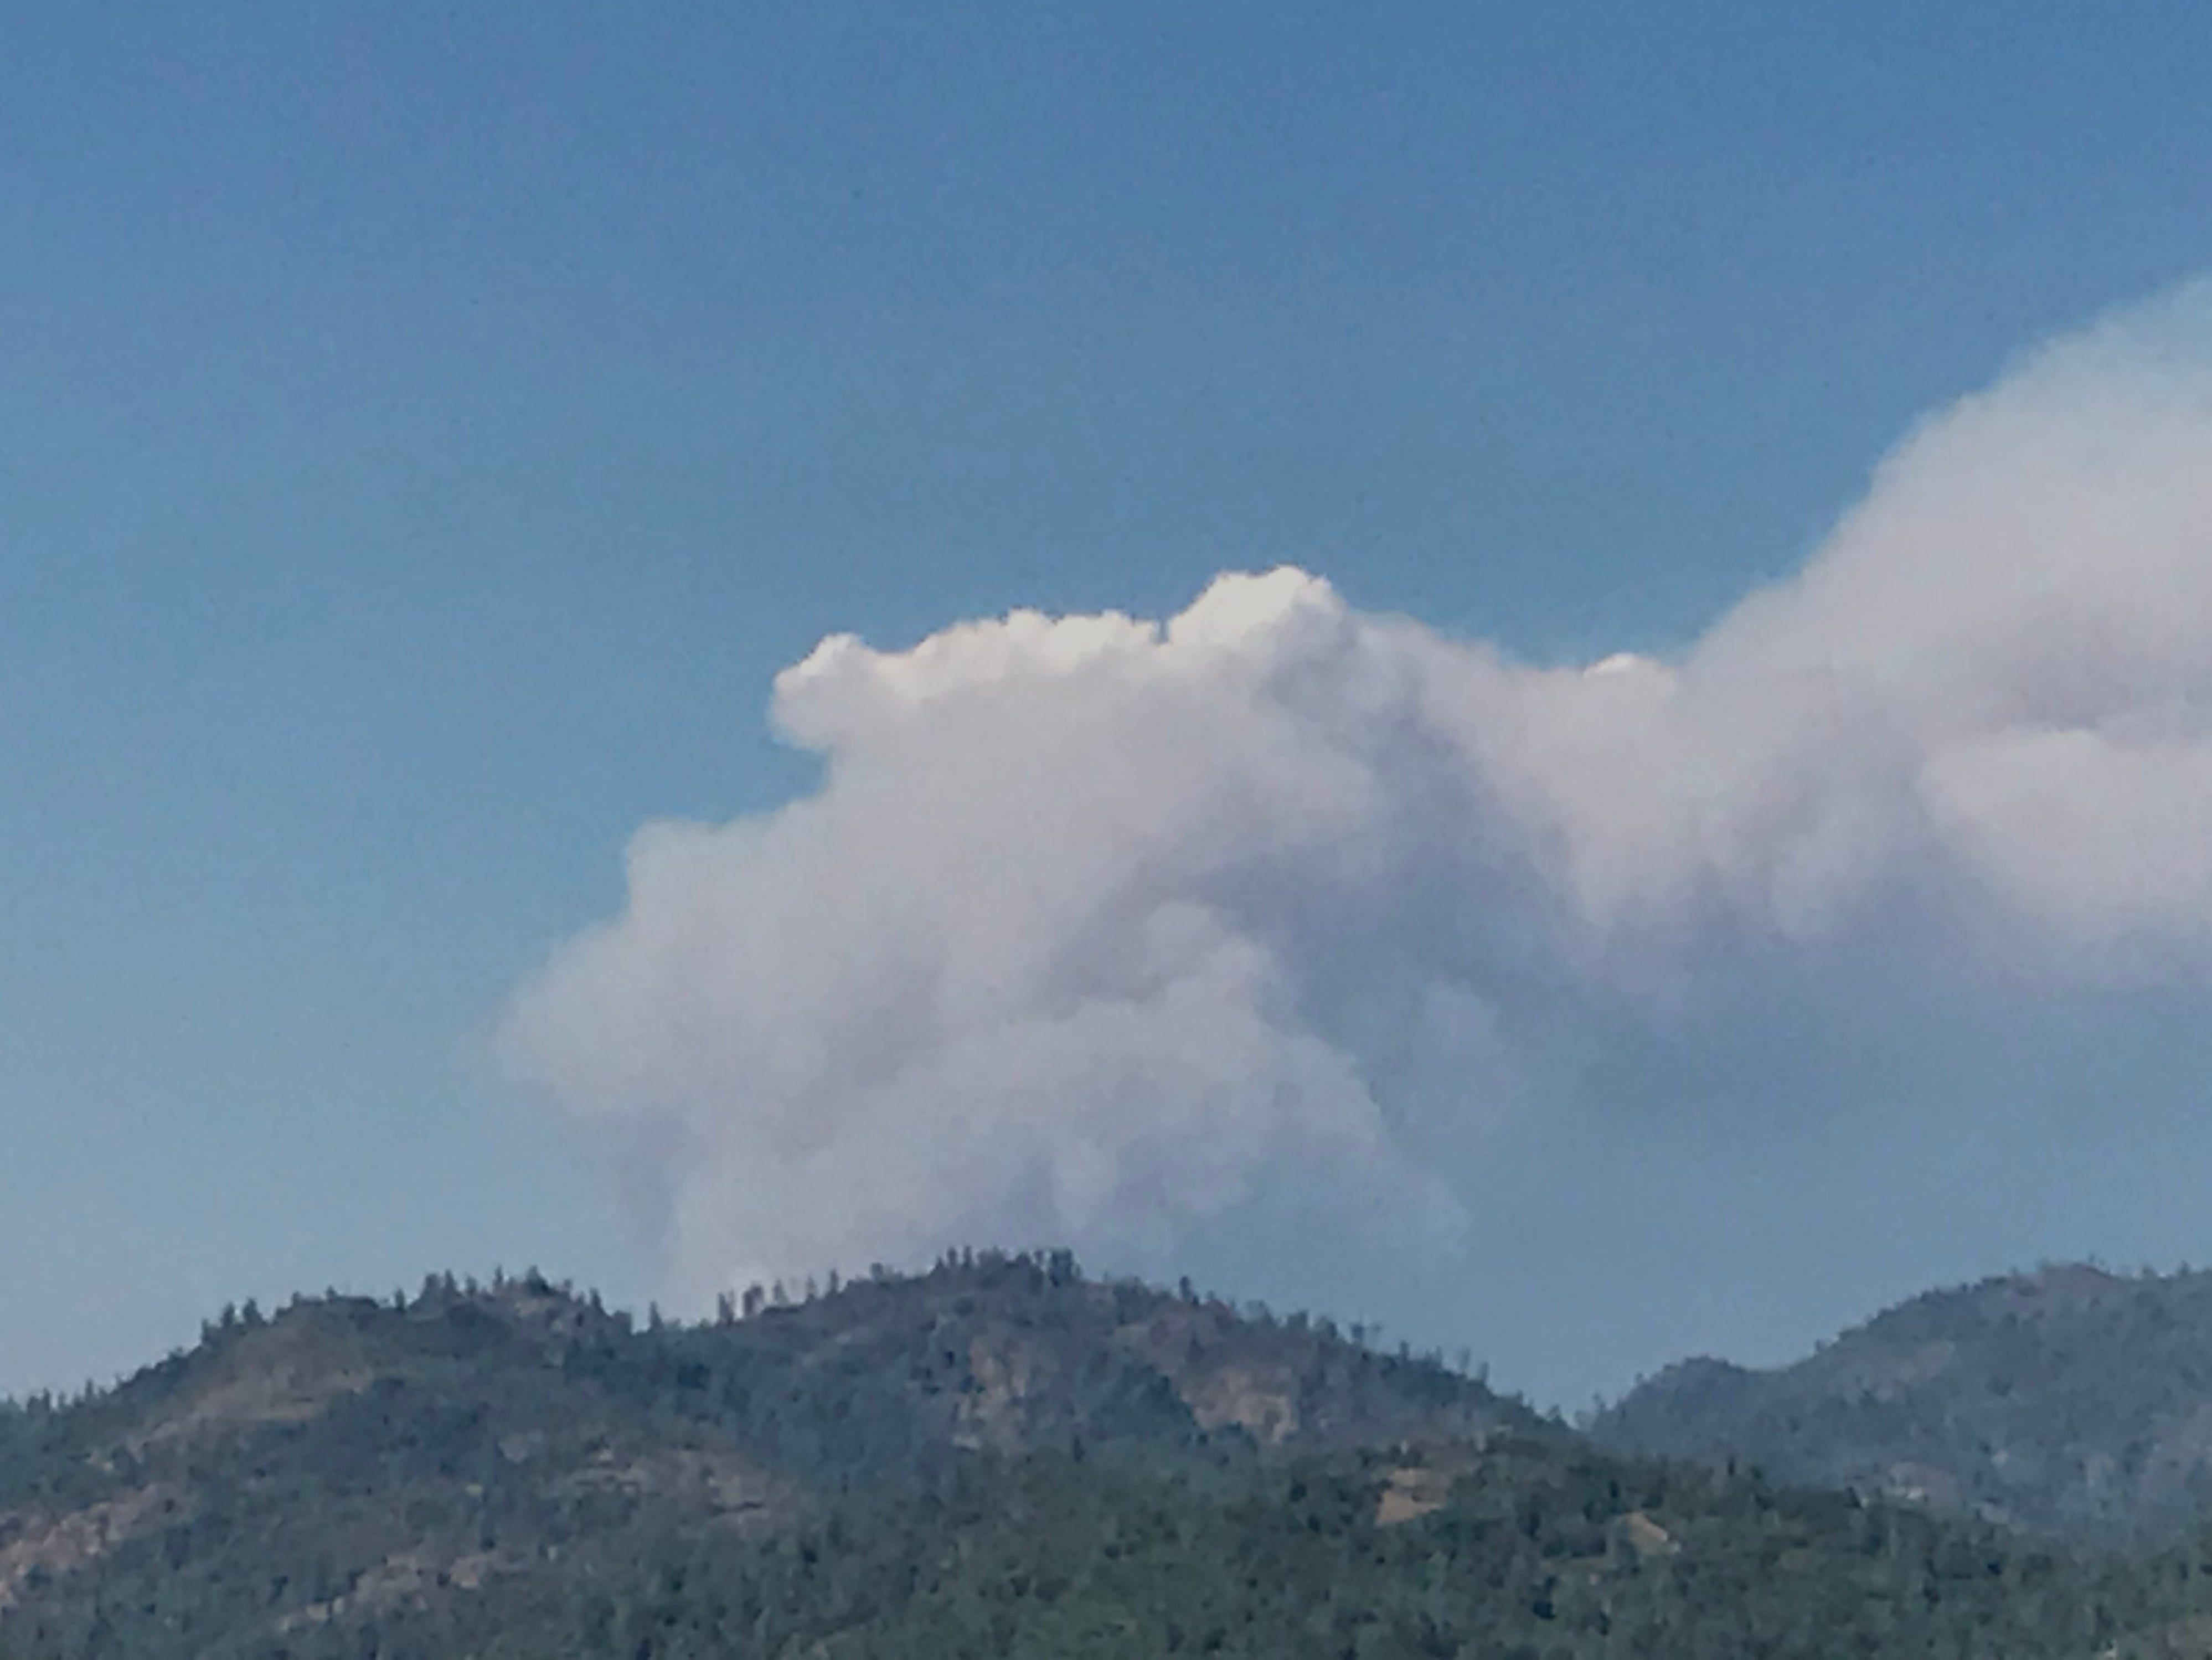 A fire that broke out Wednesday off Interstate 5 near Lakehead was easily visible from the Redding area.